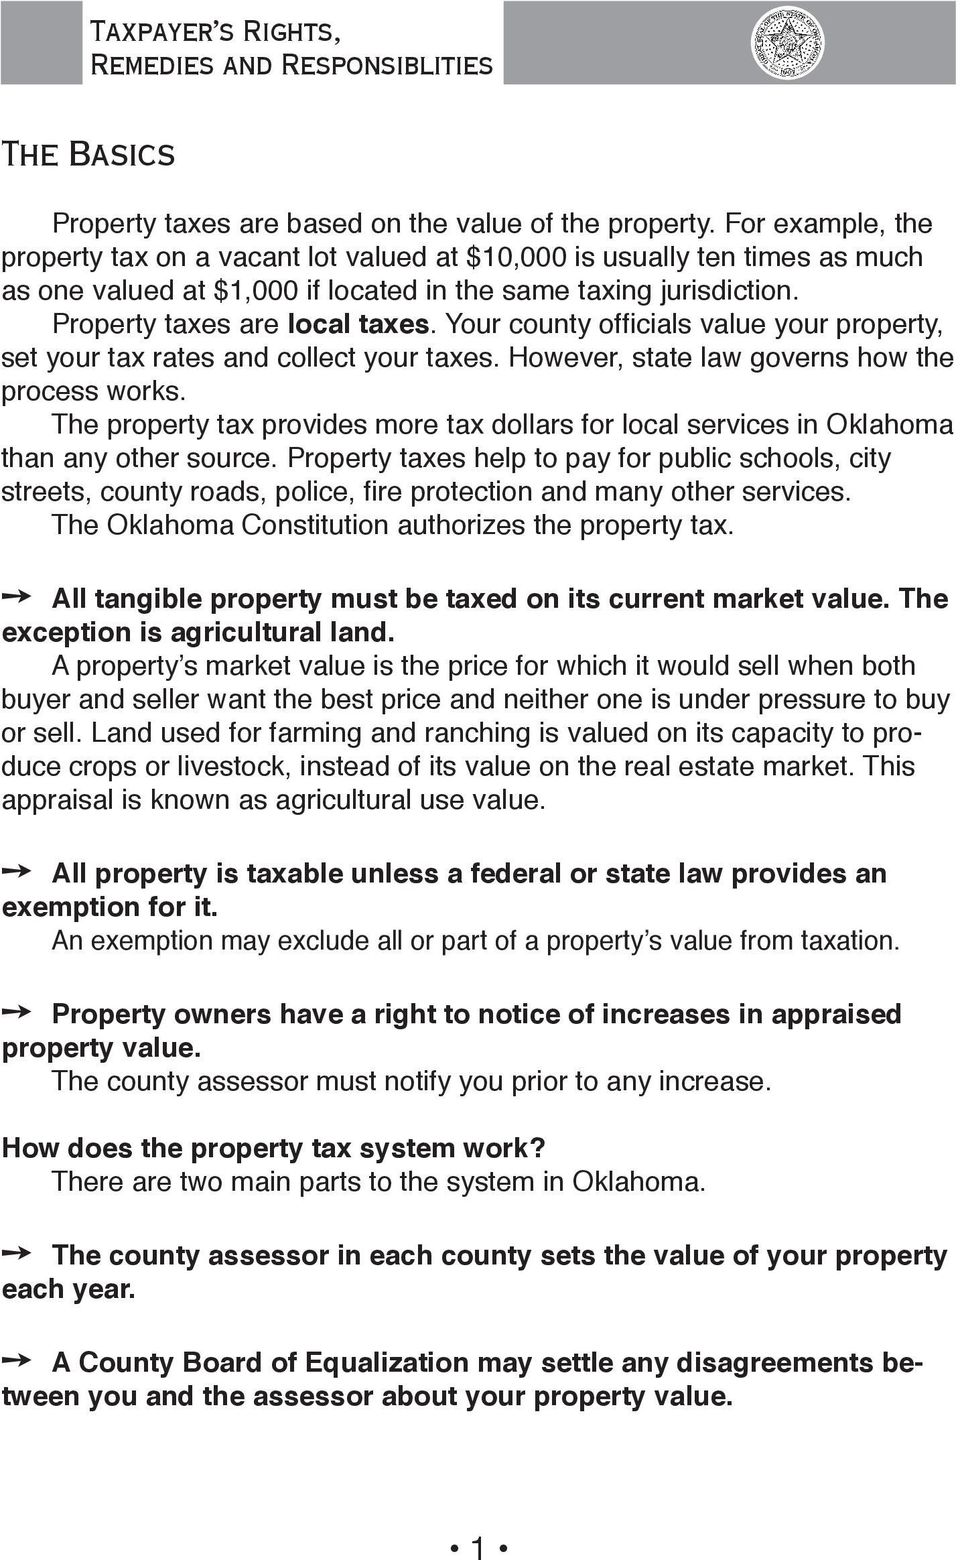 Your county officials value your property, set your tax rates and collect your taxes. However, state law governs how the process works.